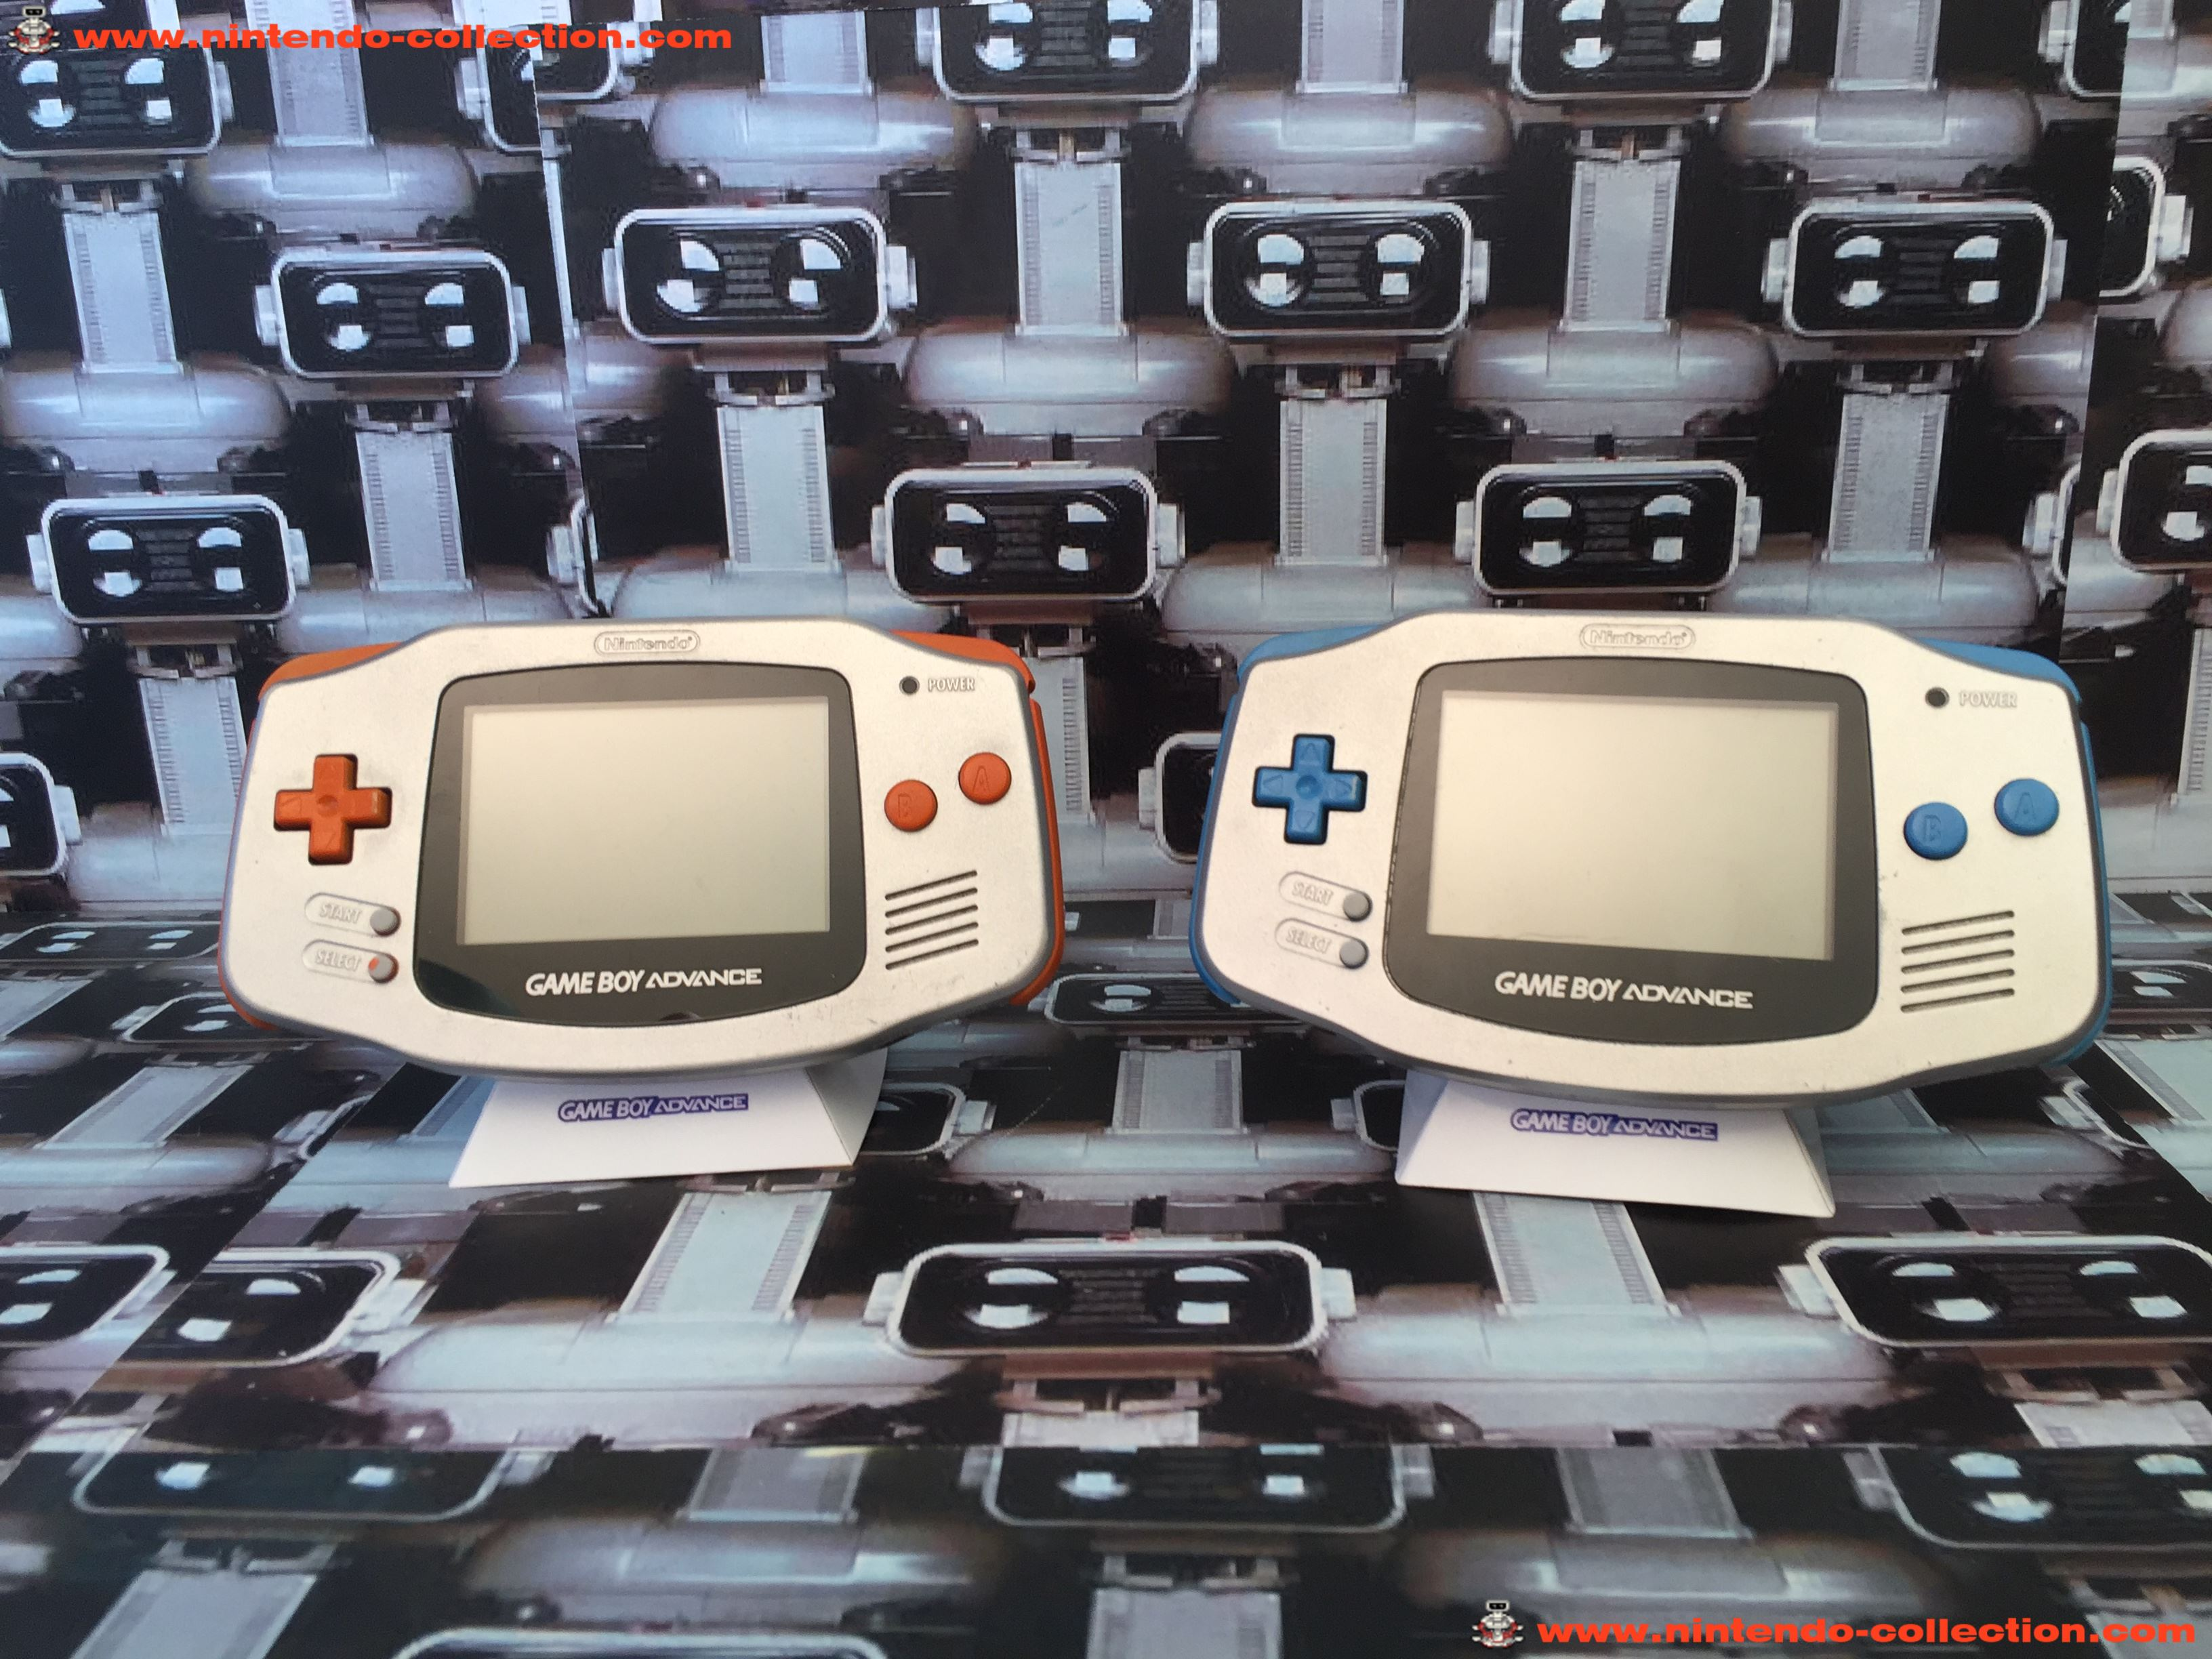 www.nintendo-collection.com - Gameboy Advance GBA Prototype Silver Orange silver blue